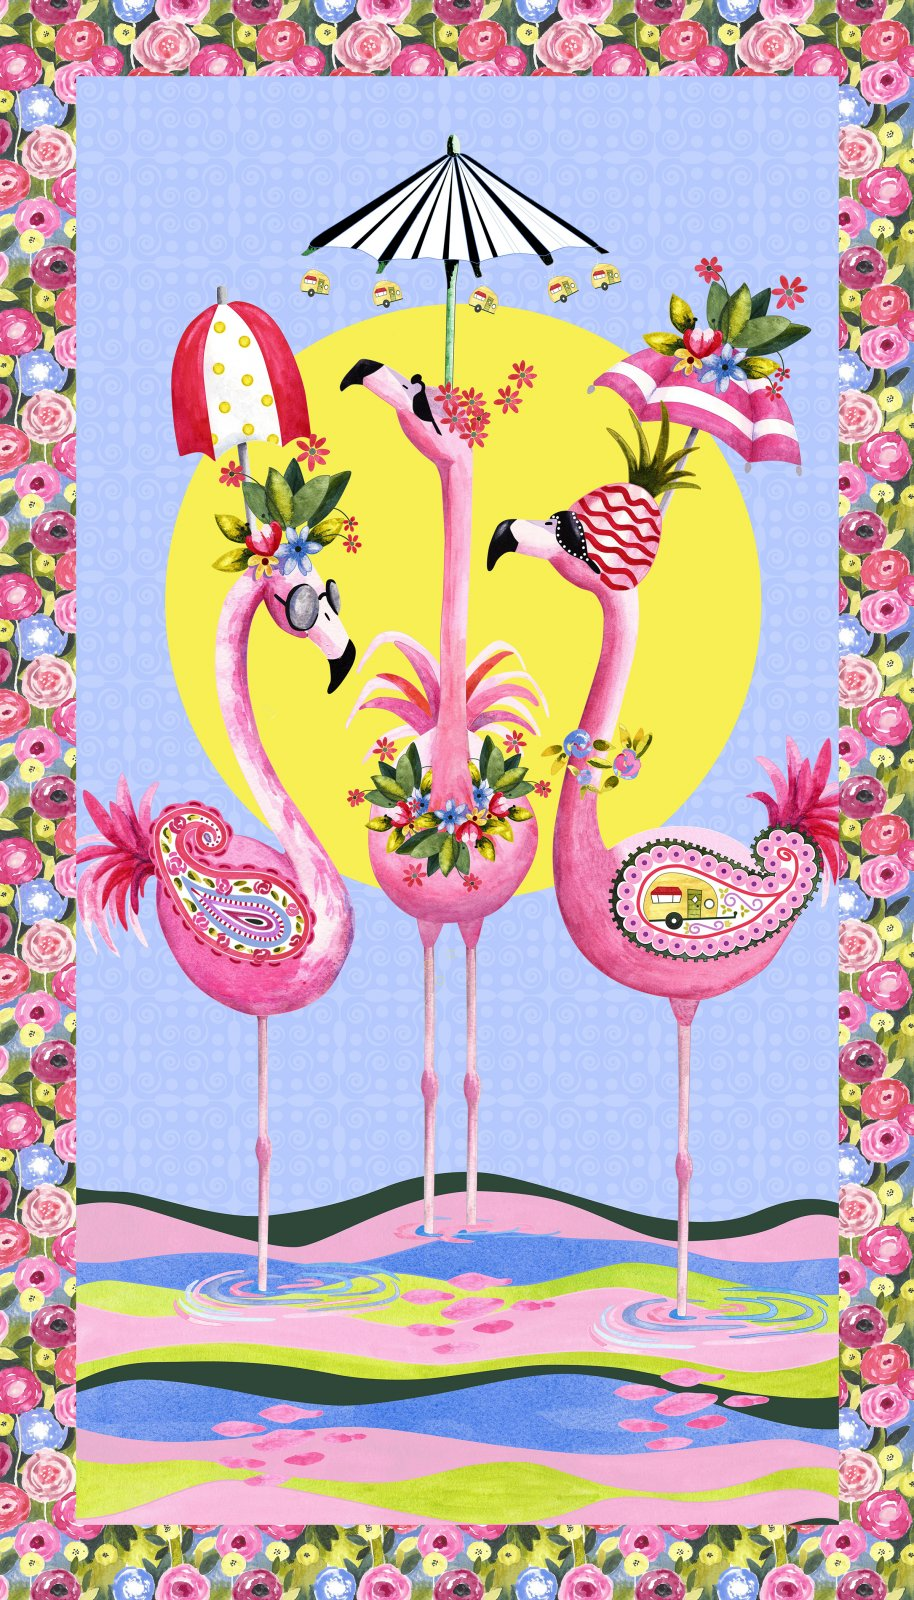 Flamingo Fantastico - Panel Fabric - Trapunto